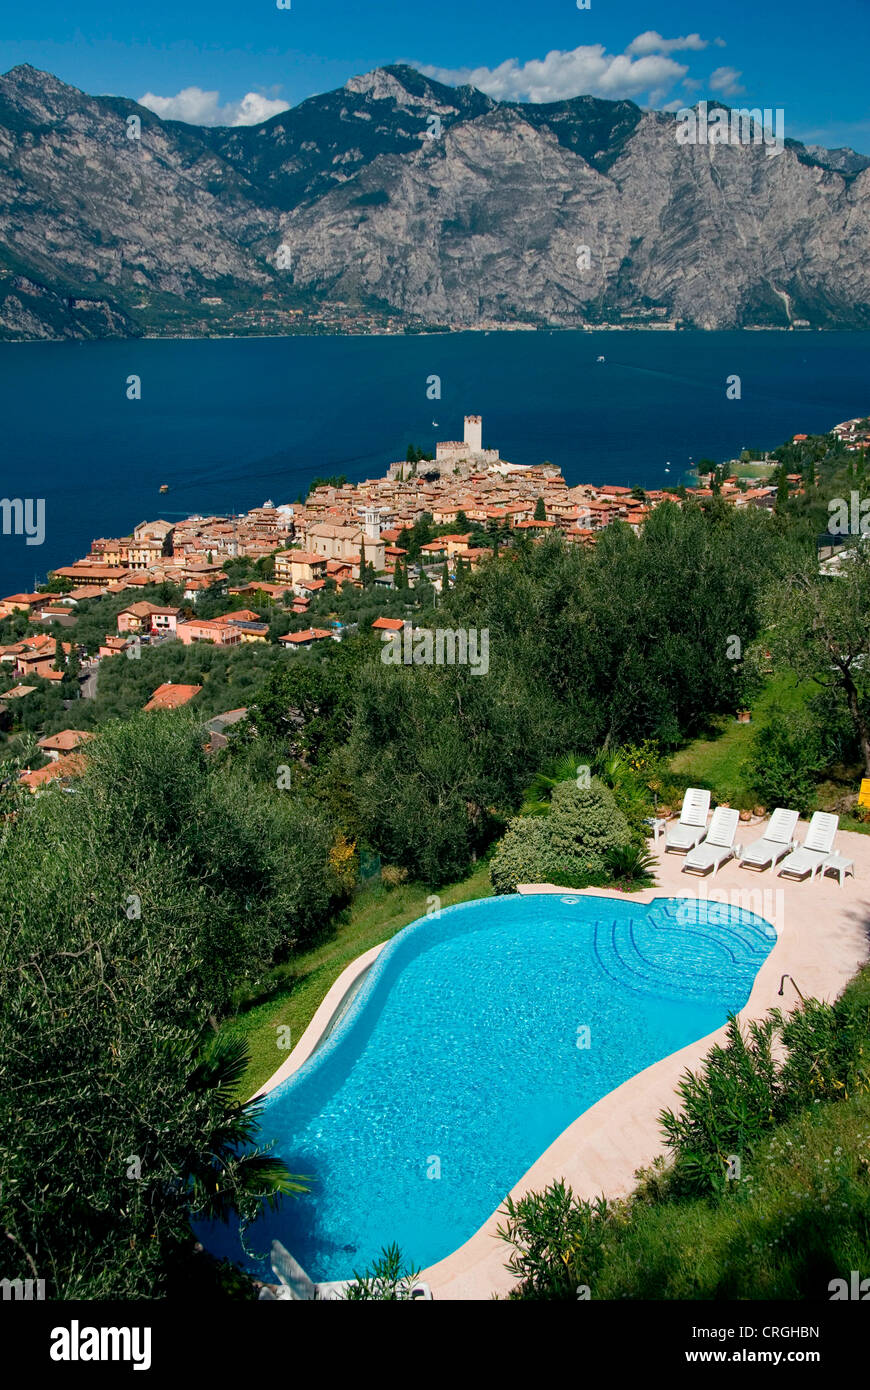 view on the village, Scaliger castle and Lake Garda, with a swimming pool in the foreground, Italy, Veneto, Malcesine Stock Photo